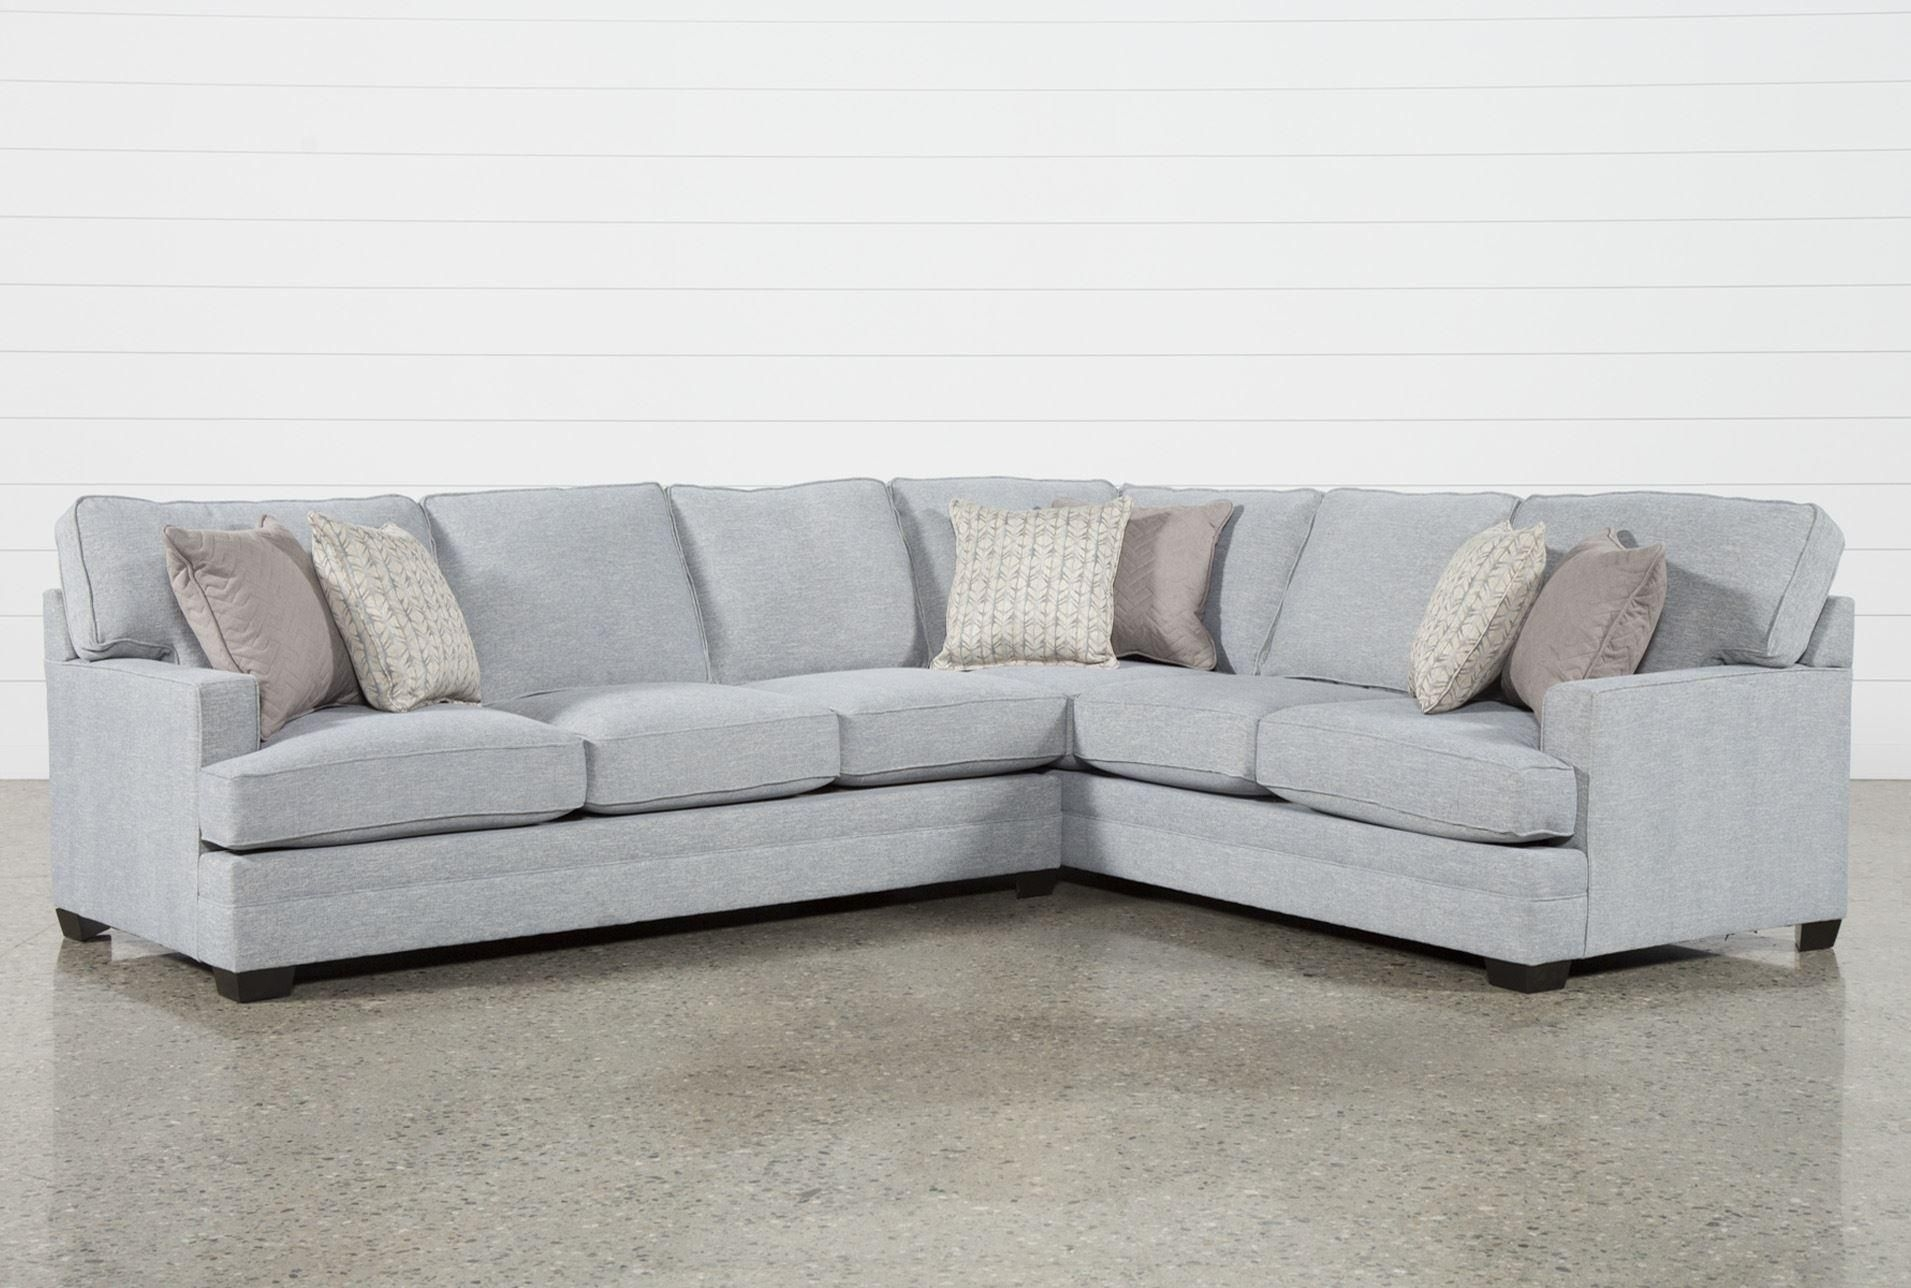 Josephine 2 Piece Sectional W/laf Sofa | For The Home | Pinterest inside Adeline 3 Piece Sectionals